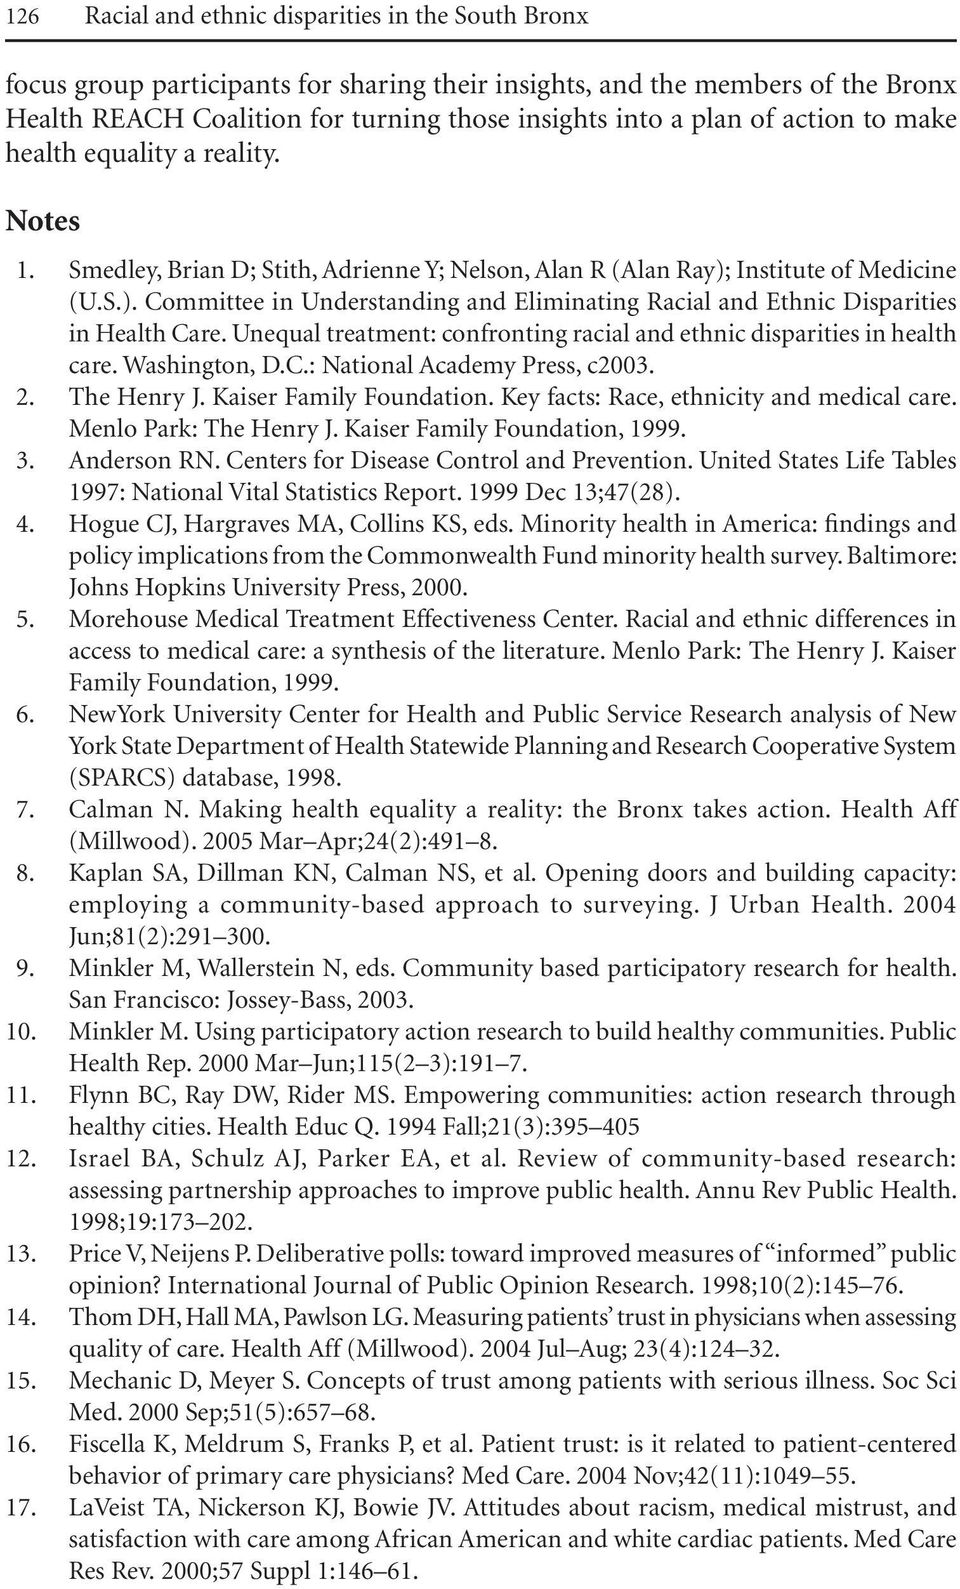 Institute of Medicine (U.S.). Committee in Understanding and Eliminating Racial and Ethnic Disparities in Health Care. Unequal treatment: confronting racial and ethnic disparities in health care.